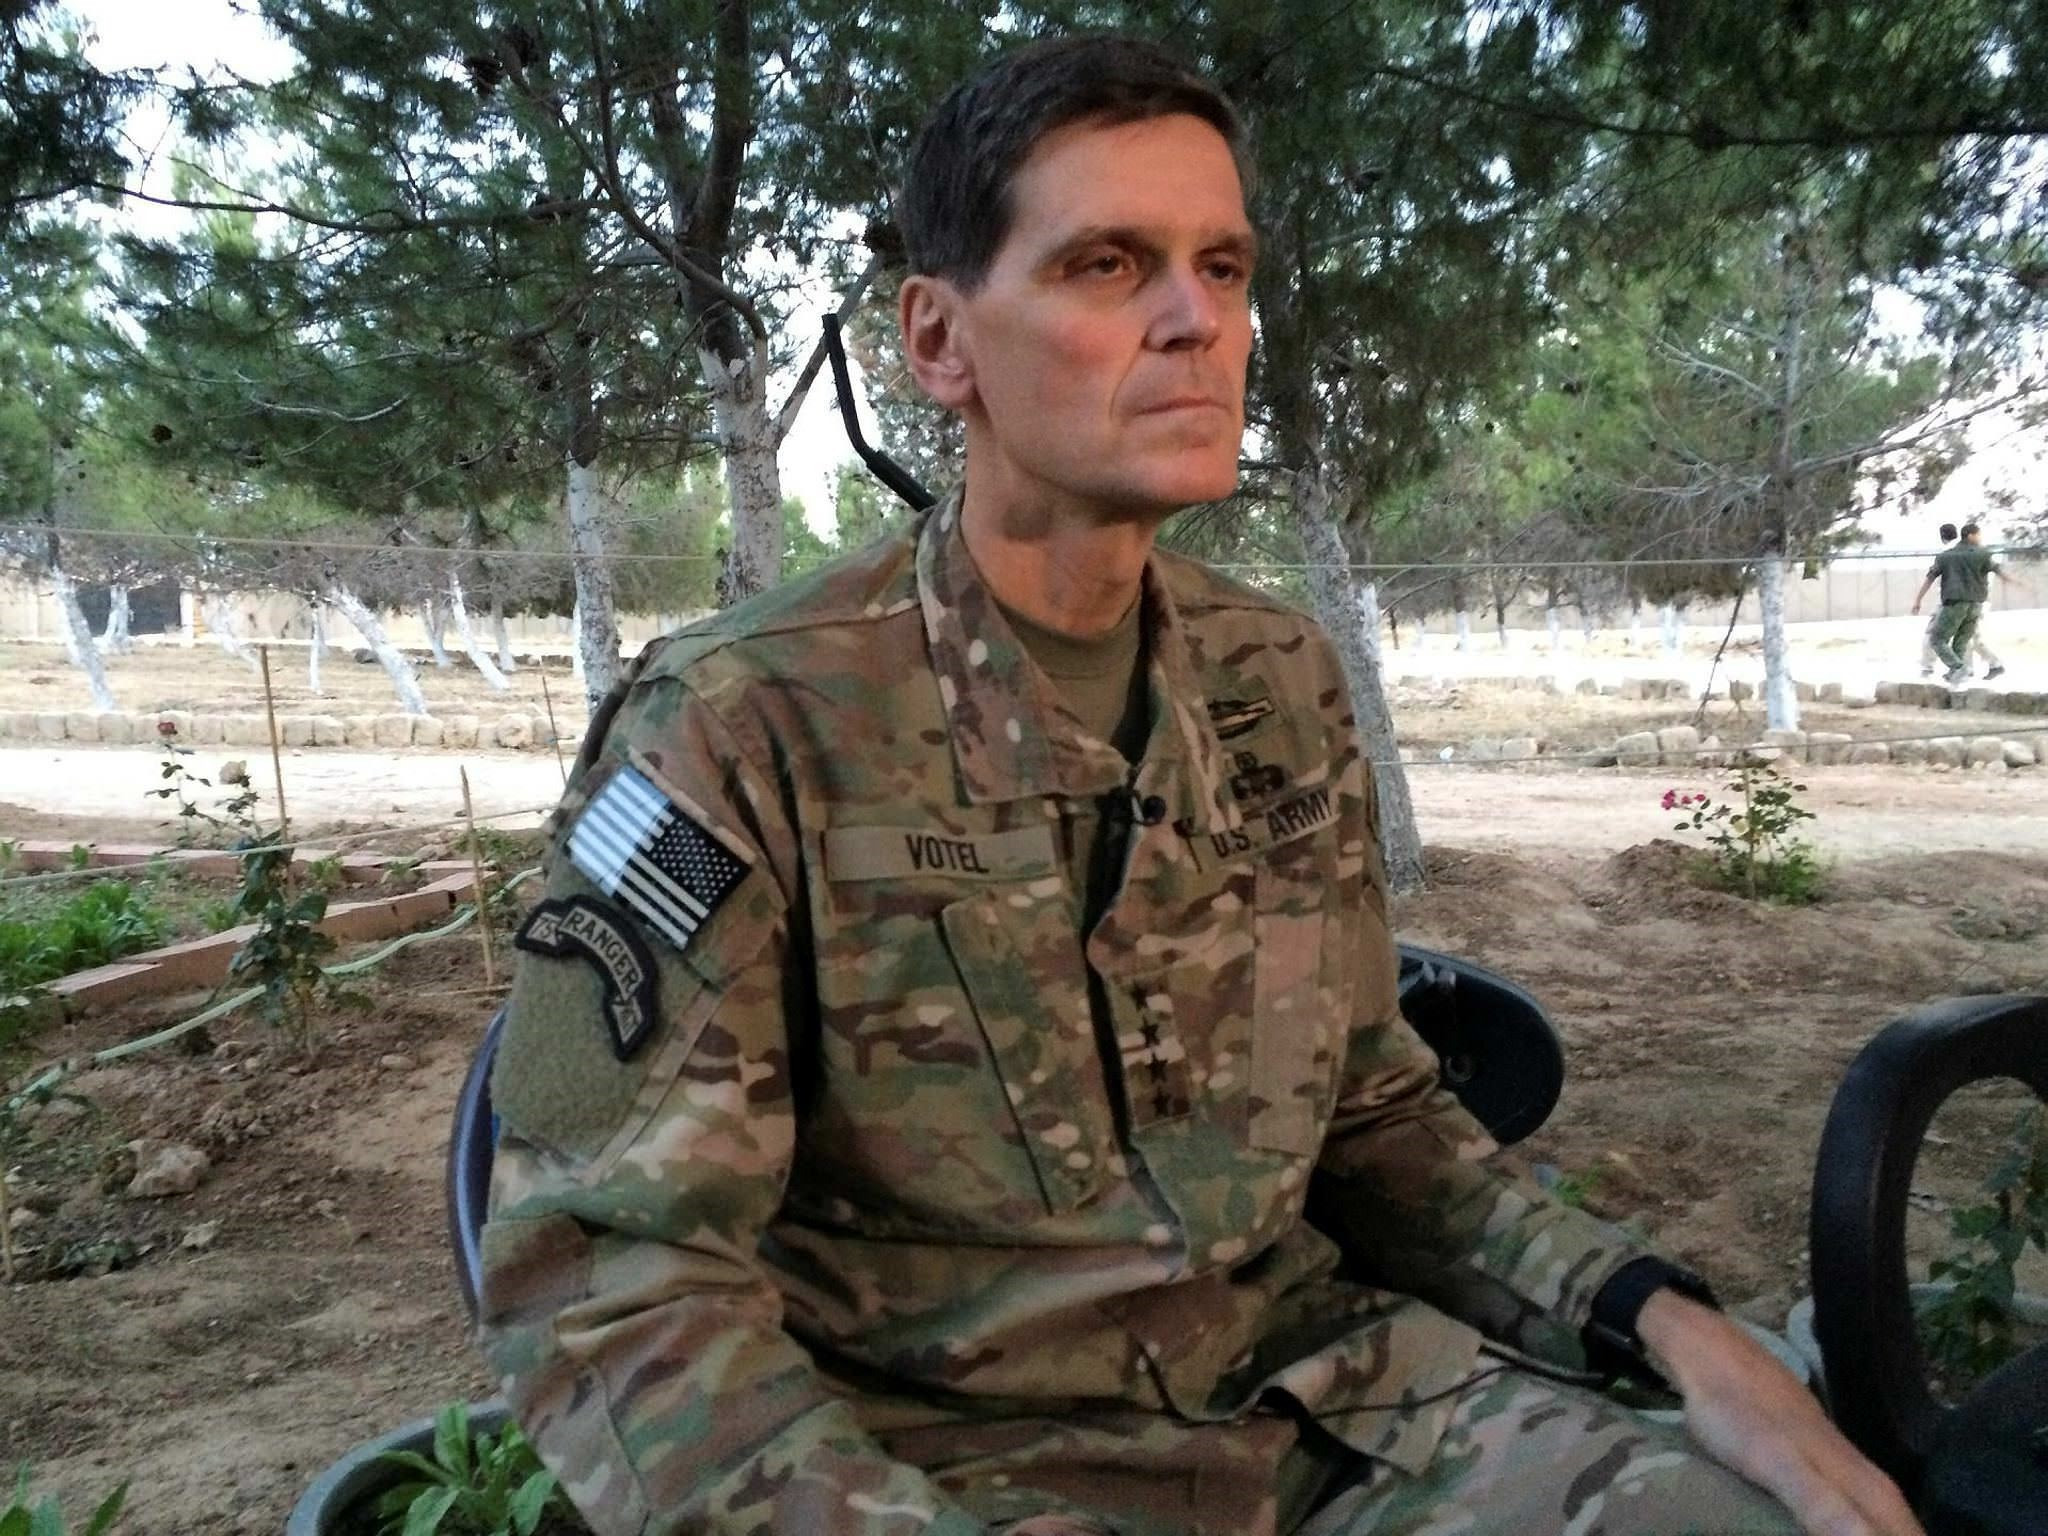 Army Gen. Joseph Votel speaks to reporters Saturday, May 21, 2016 during a secret trip to Syria. (AP Photo)